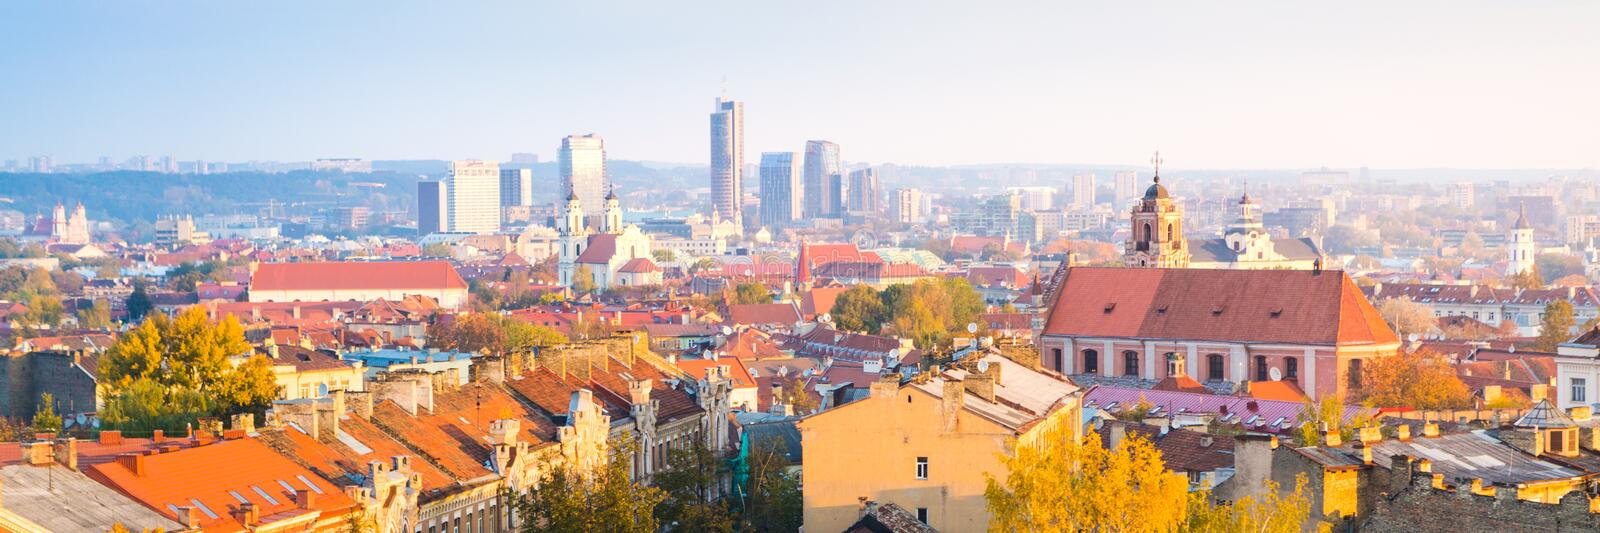 Panorama of the business centre of Vilnius. Lithuania stock photo